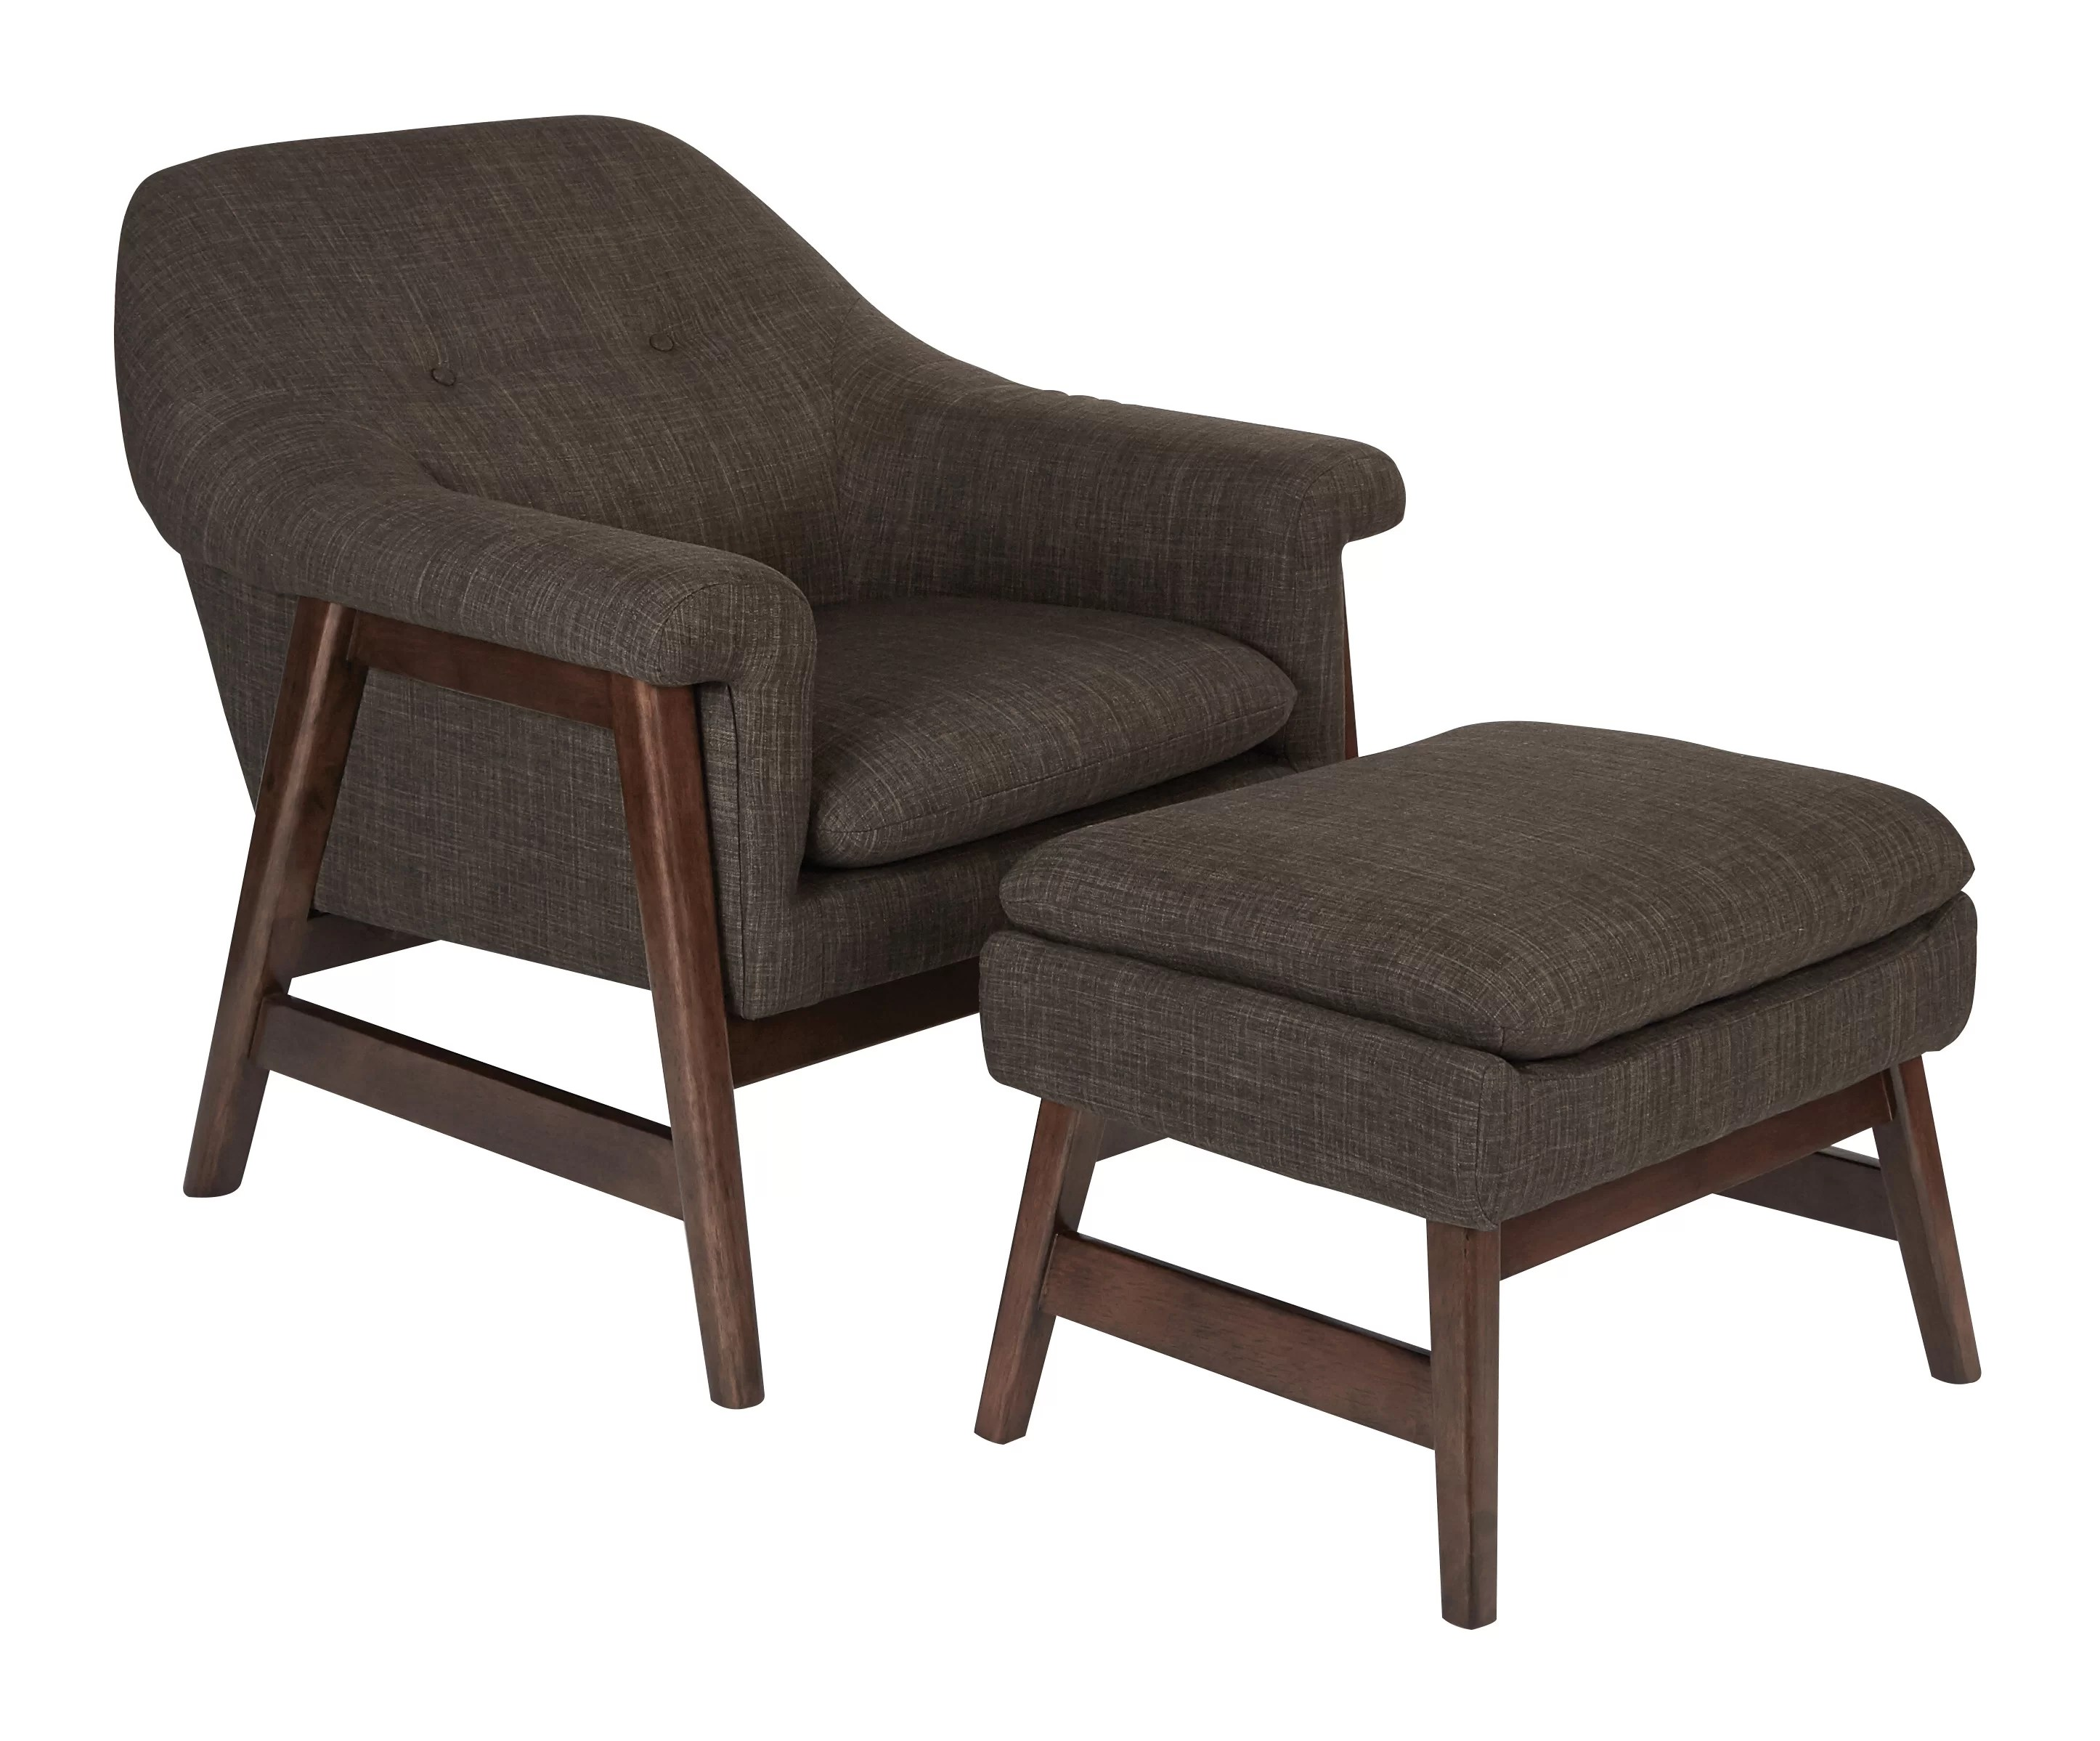 Chair Ottoman Wilber Lounge Chair And Ottoman